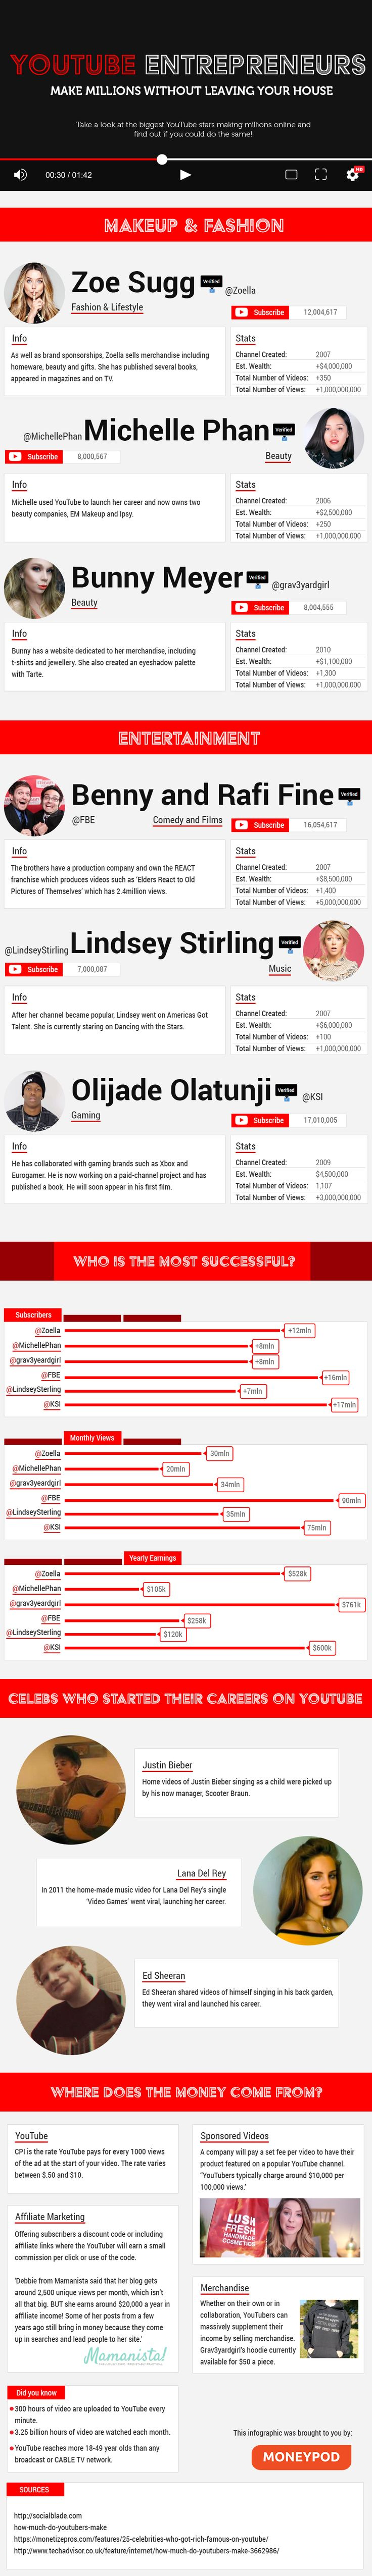 150 best Business images on Pinterest | Info graphics, Infographic ...